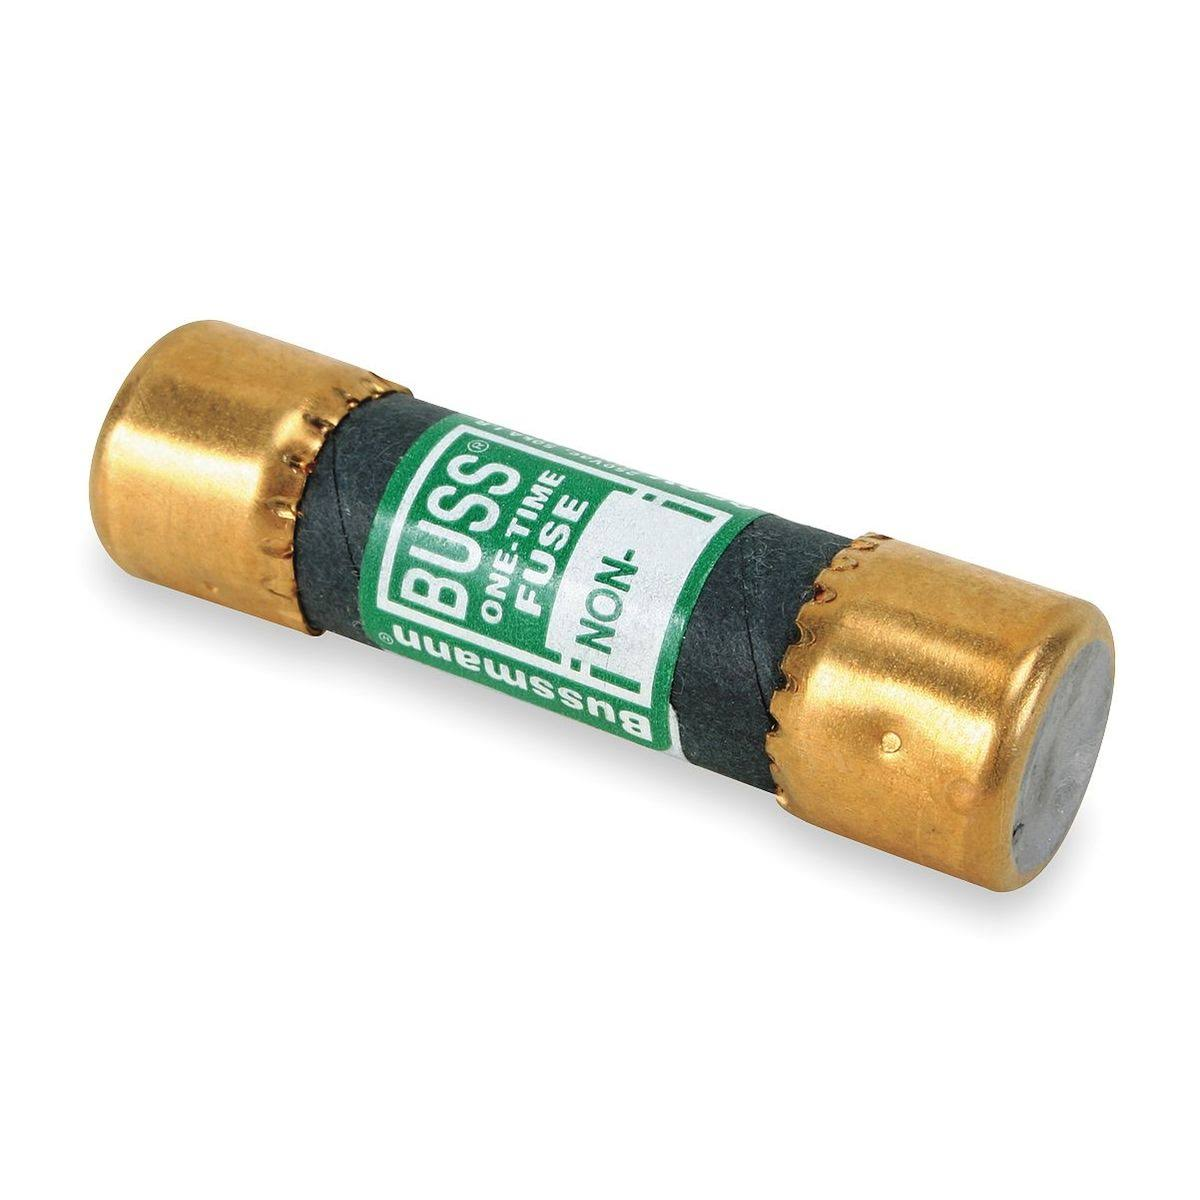 Bussmann NON-20 Non Cartridge Fuse